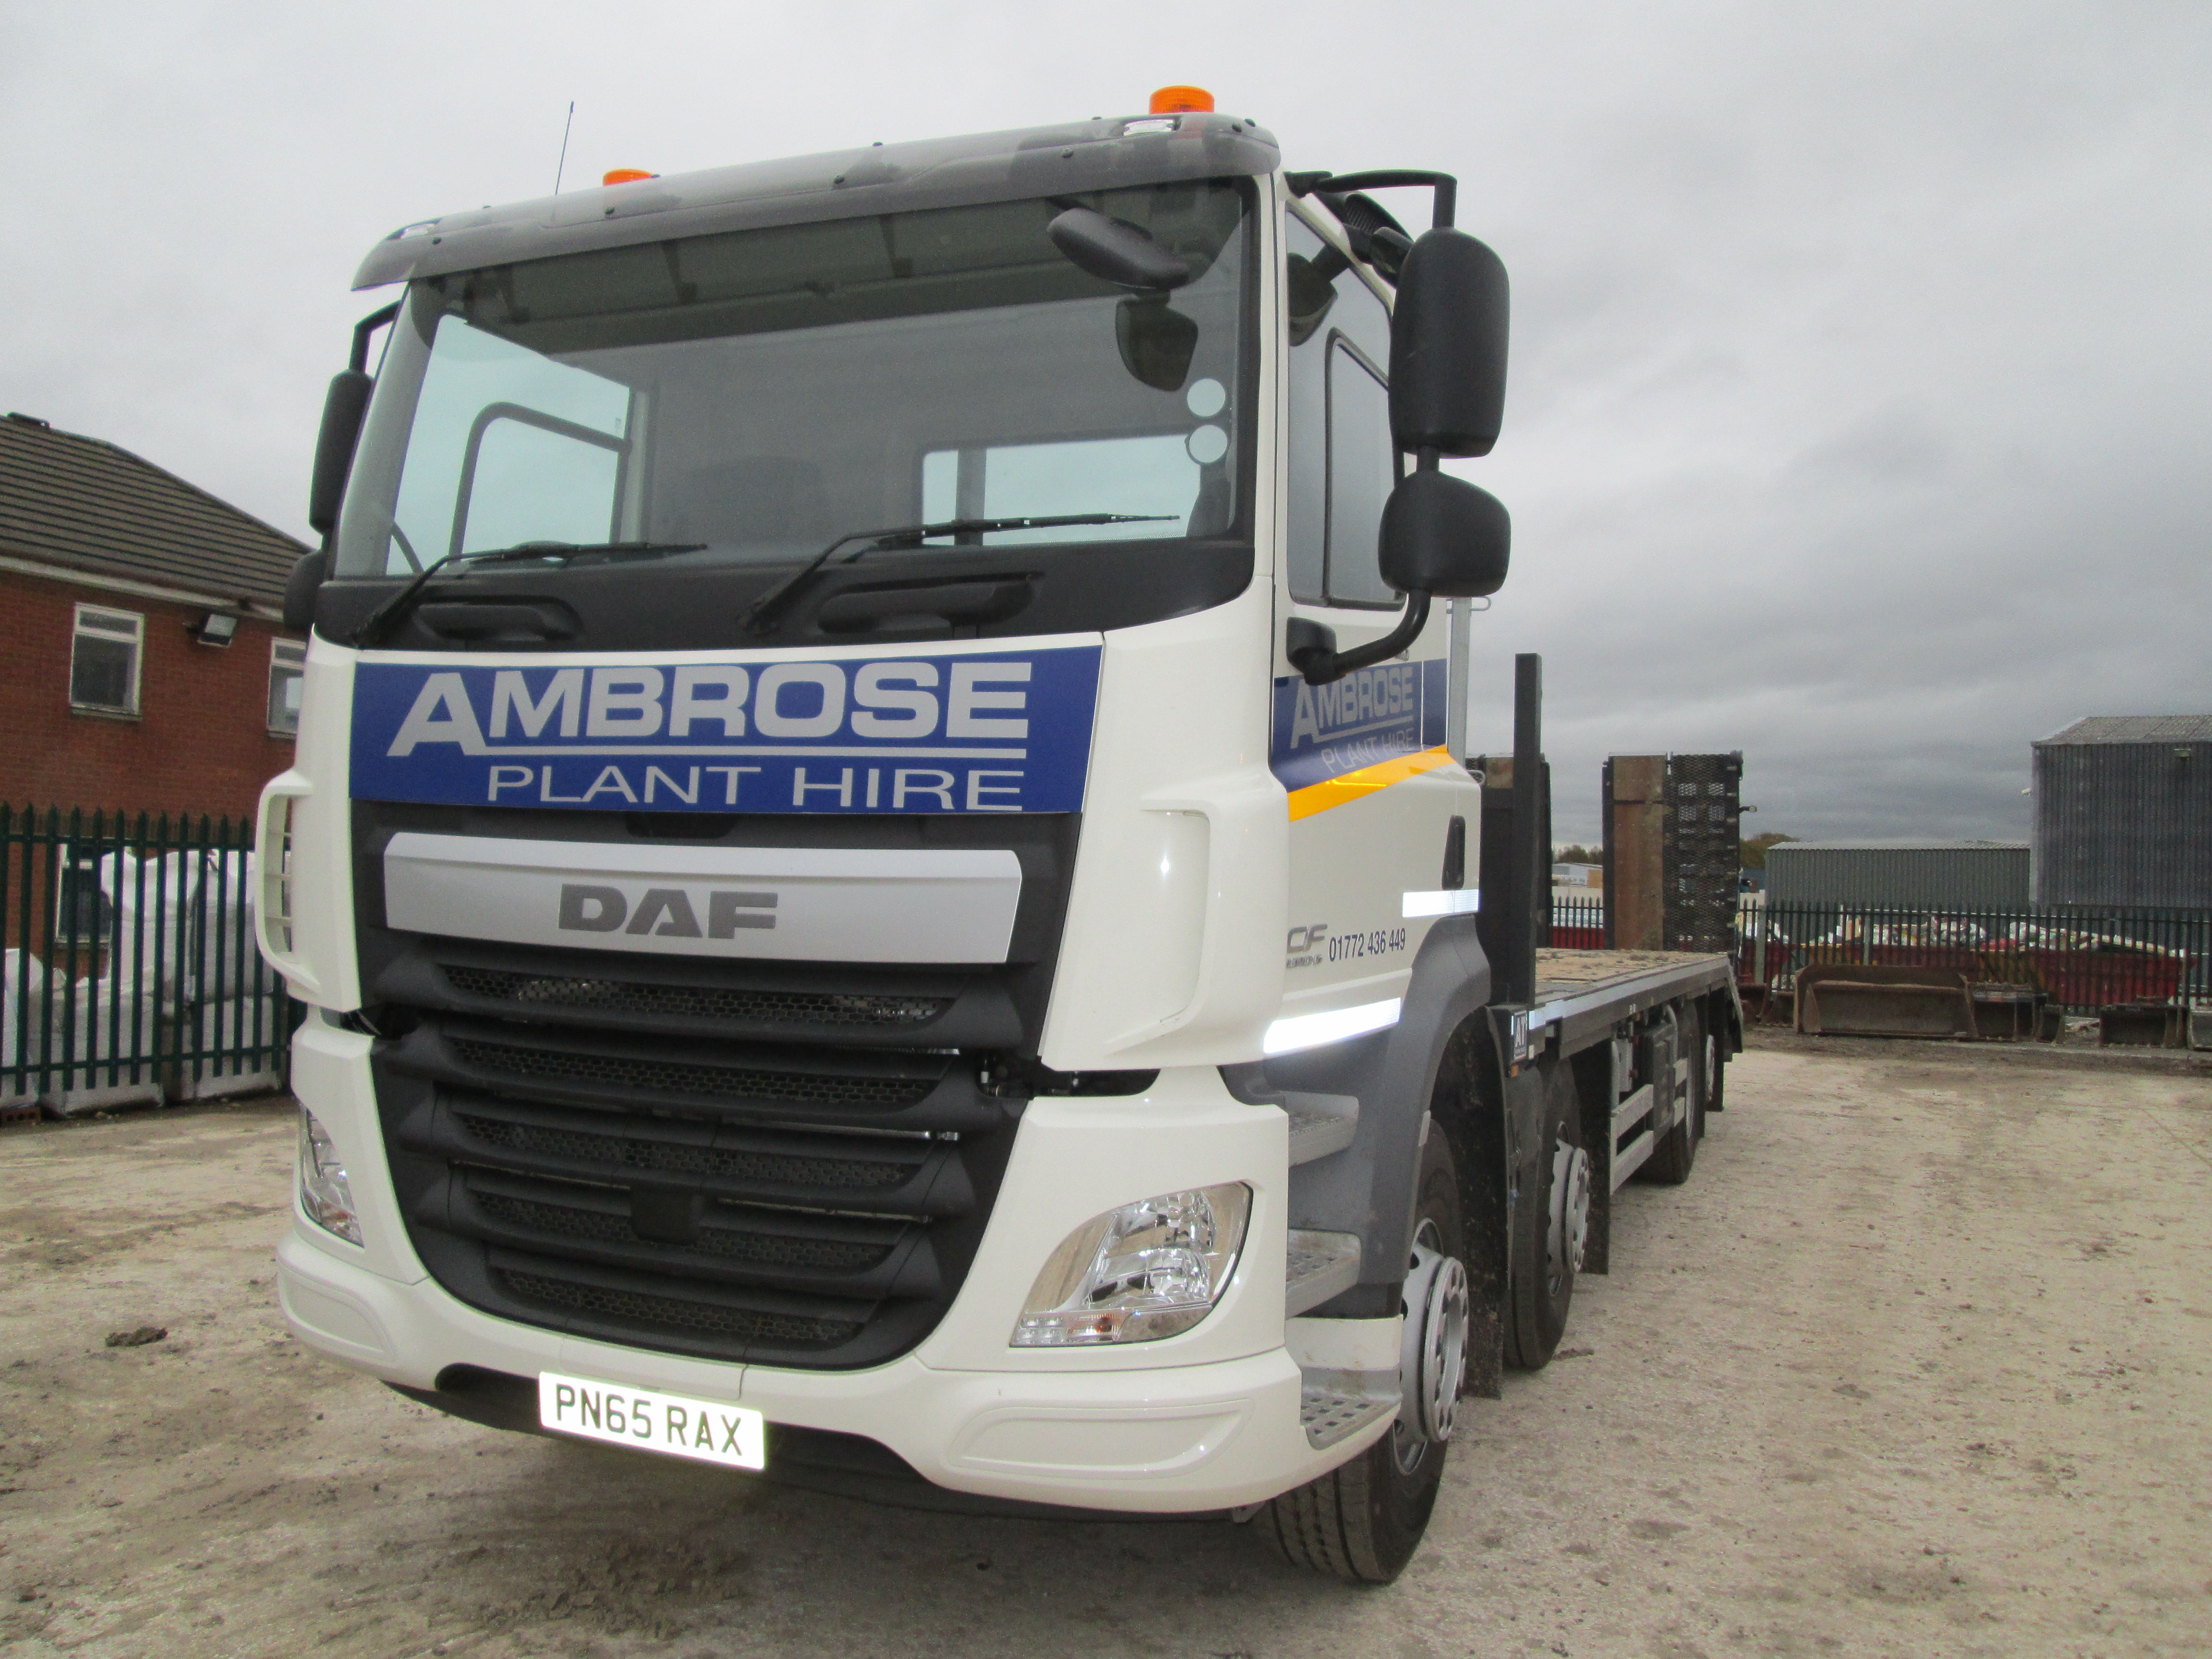 Ambrose Hire take delivery of new DAF Euro 6   Ambrose Plant